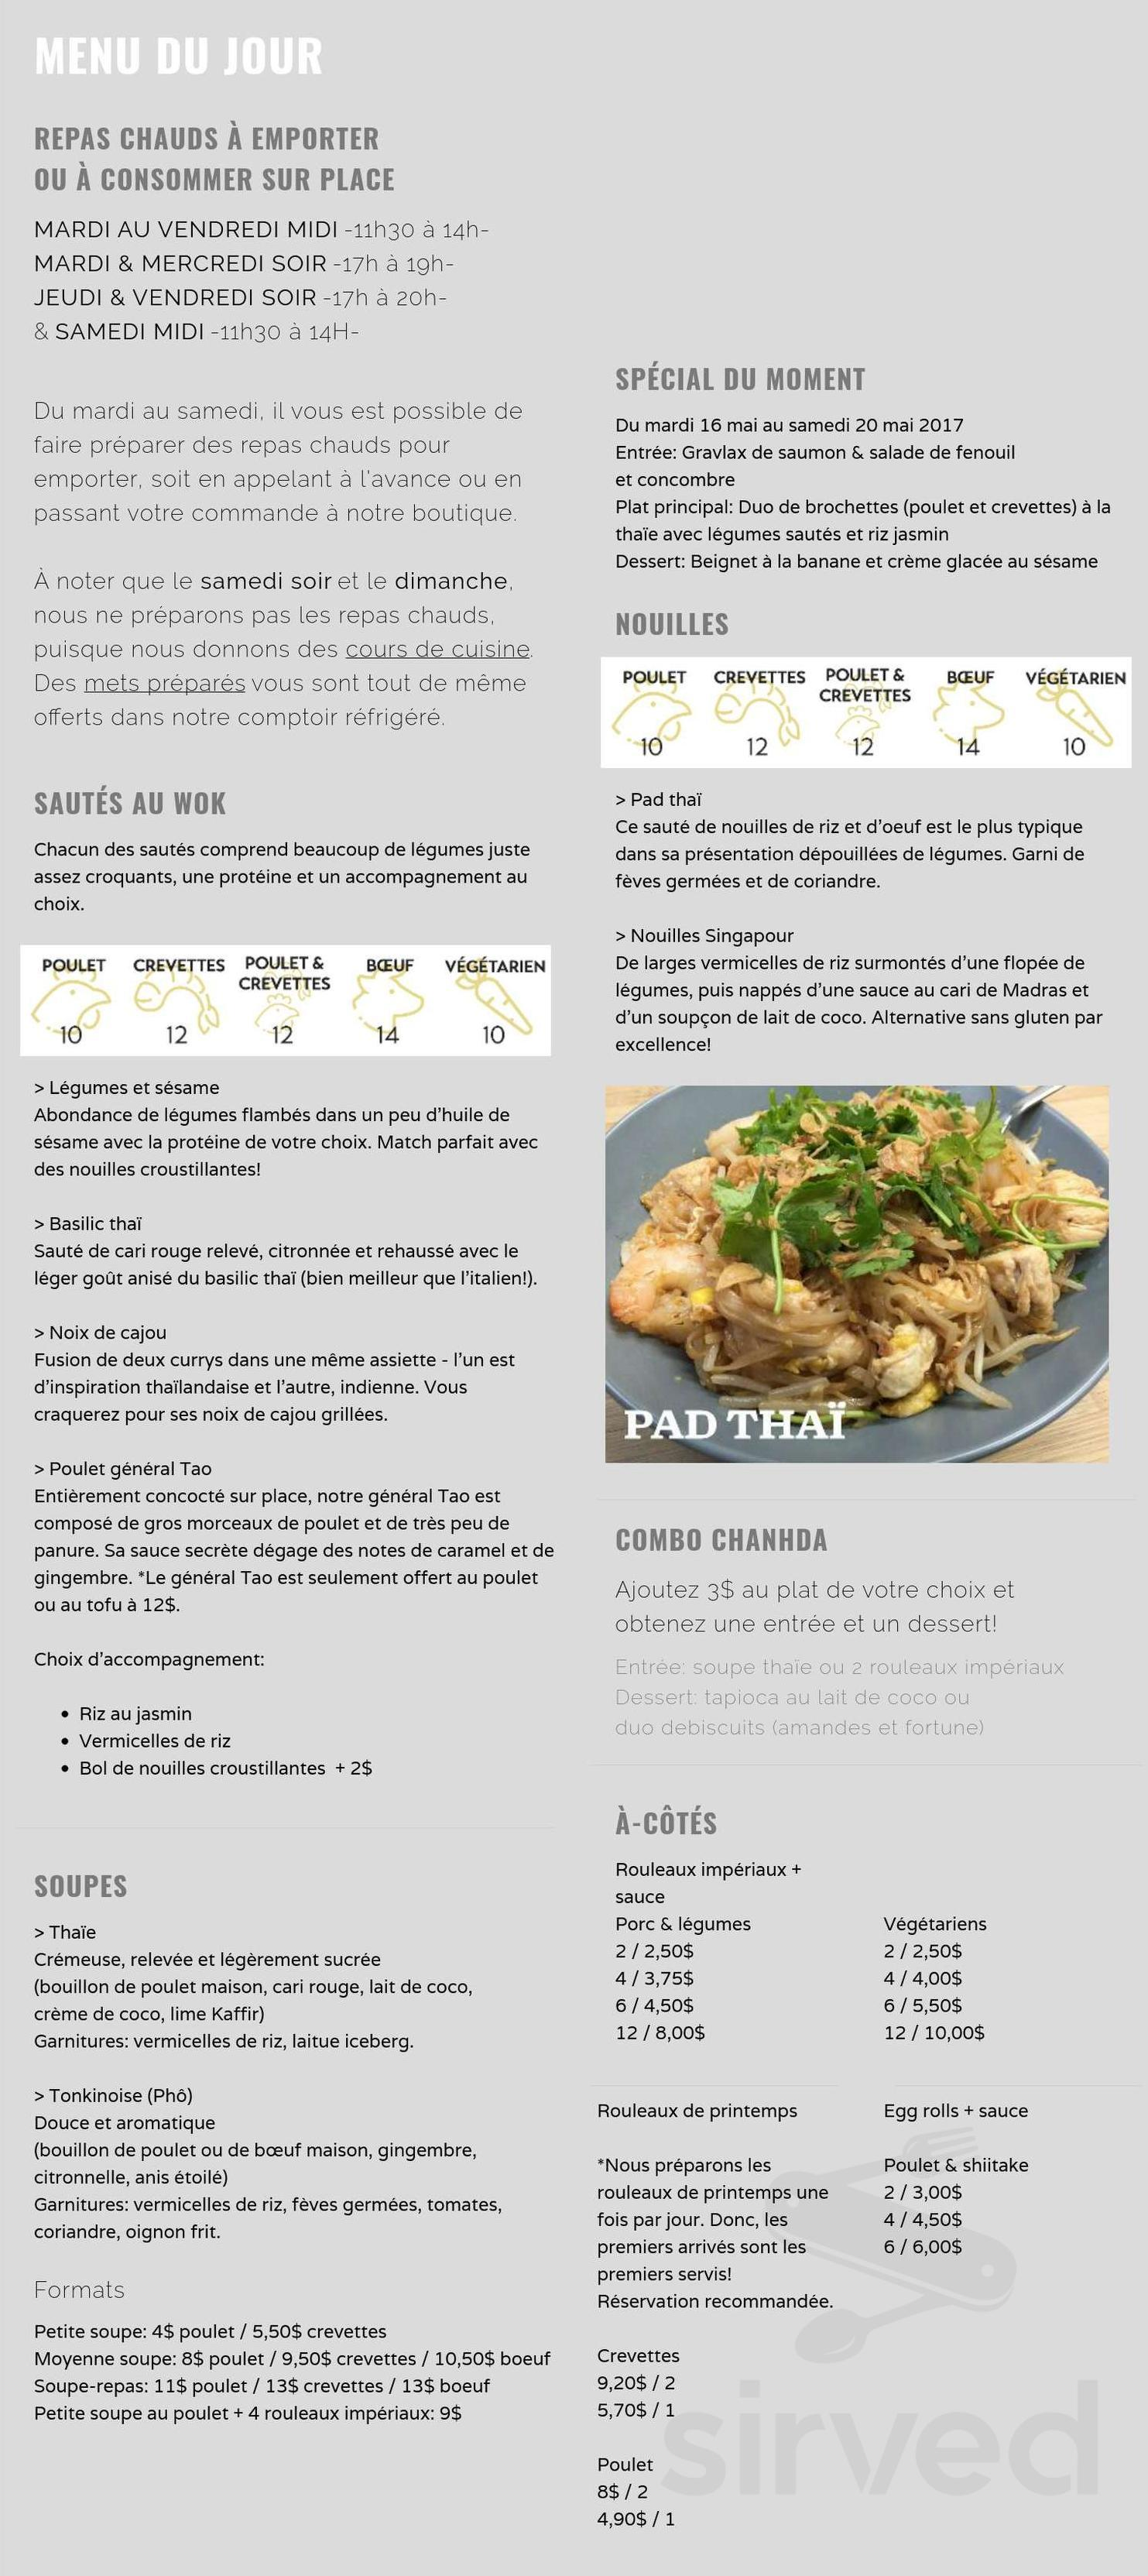 En Cuisine Avec Coco Menu For Chanhda Cuisine Asiatique In Quebec Quebec Canada